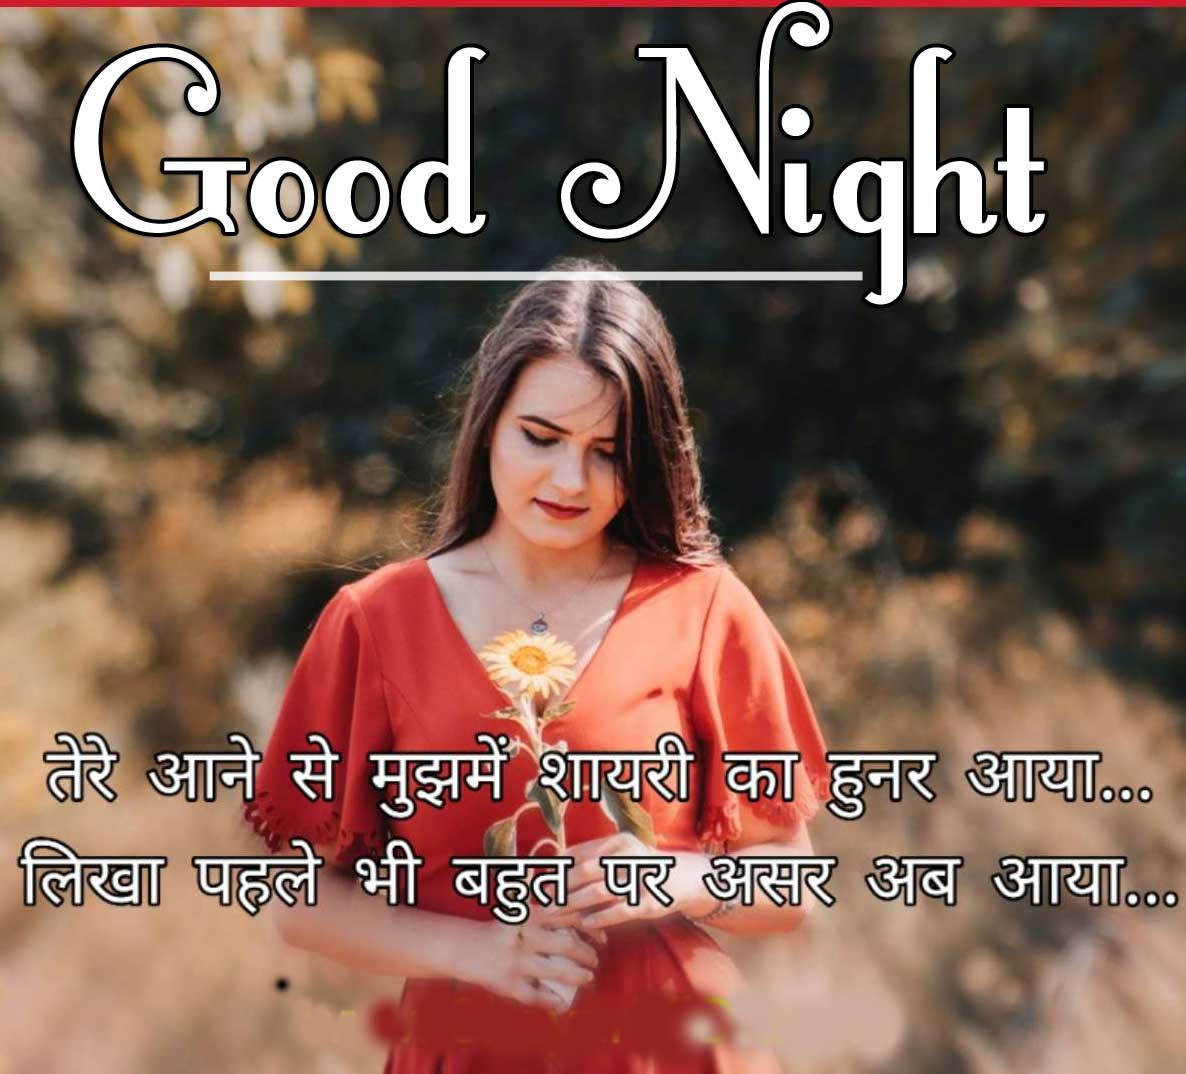 Beautiful Free Hindi Shayari Good Night photo With Beautiful Girls